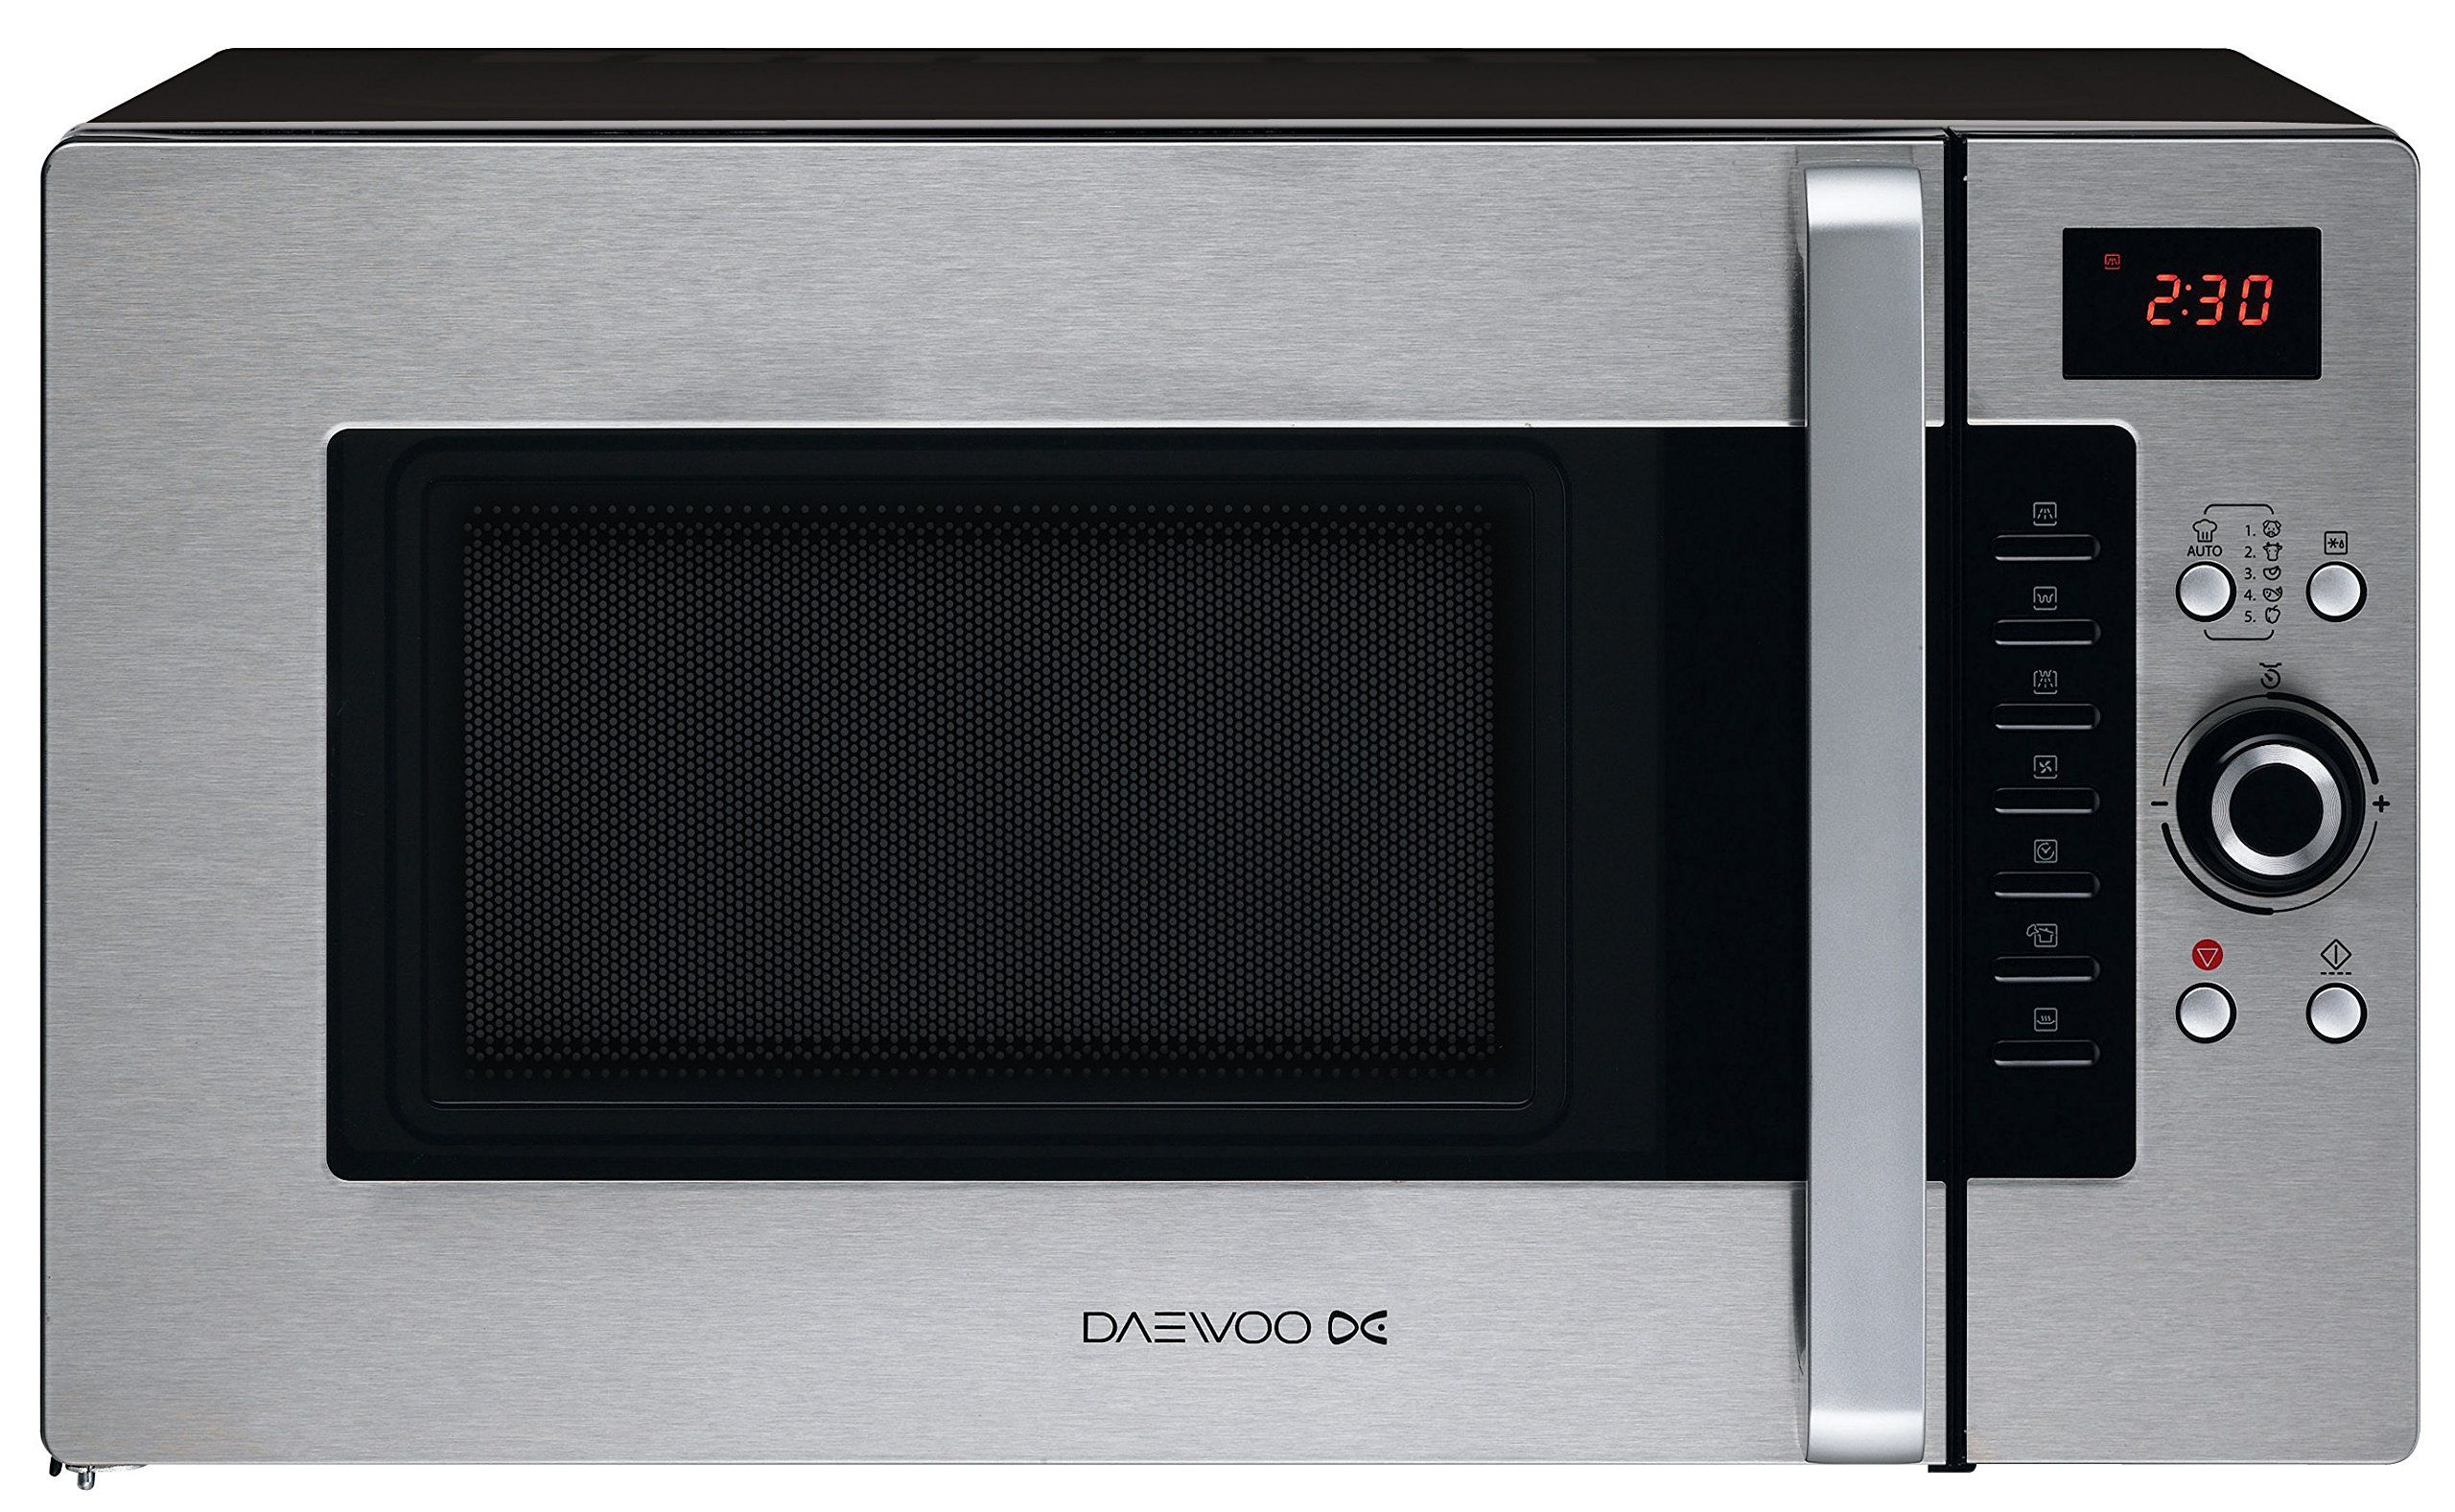 Daewoo Koc9q4ds Convection Microwave Oven 1 0 Cu Ft 900w Stainless Steel Read More Reviews Microwave Convection Oven Microwave Oven Convection Microwaves